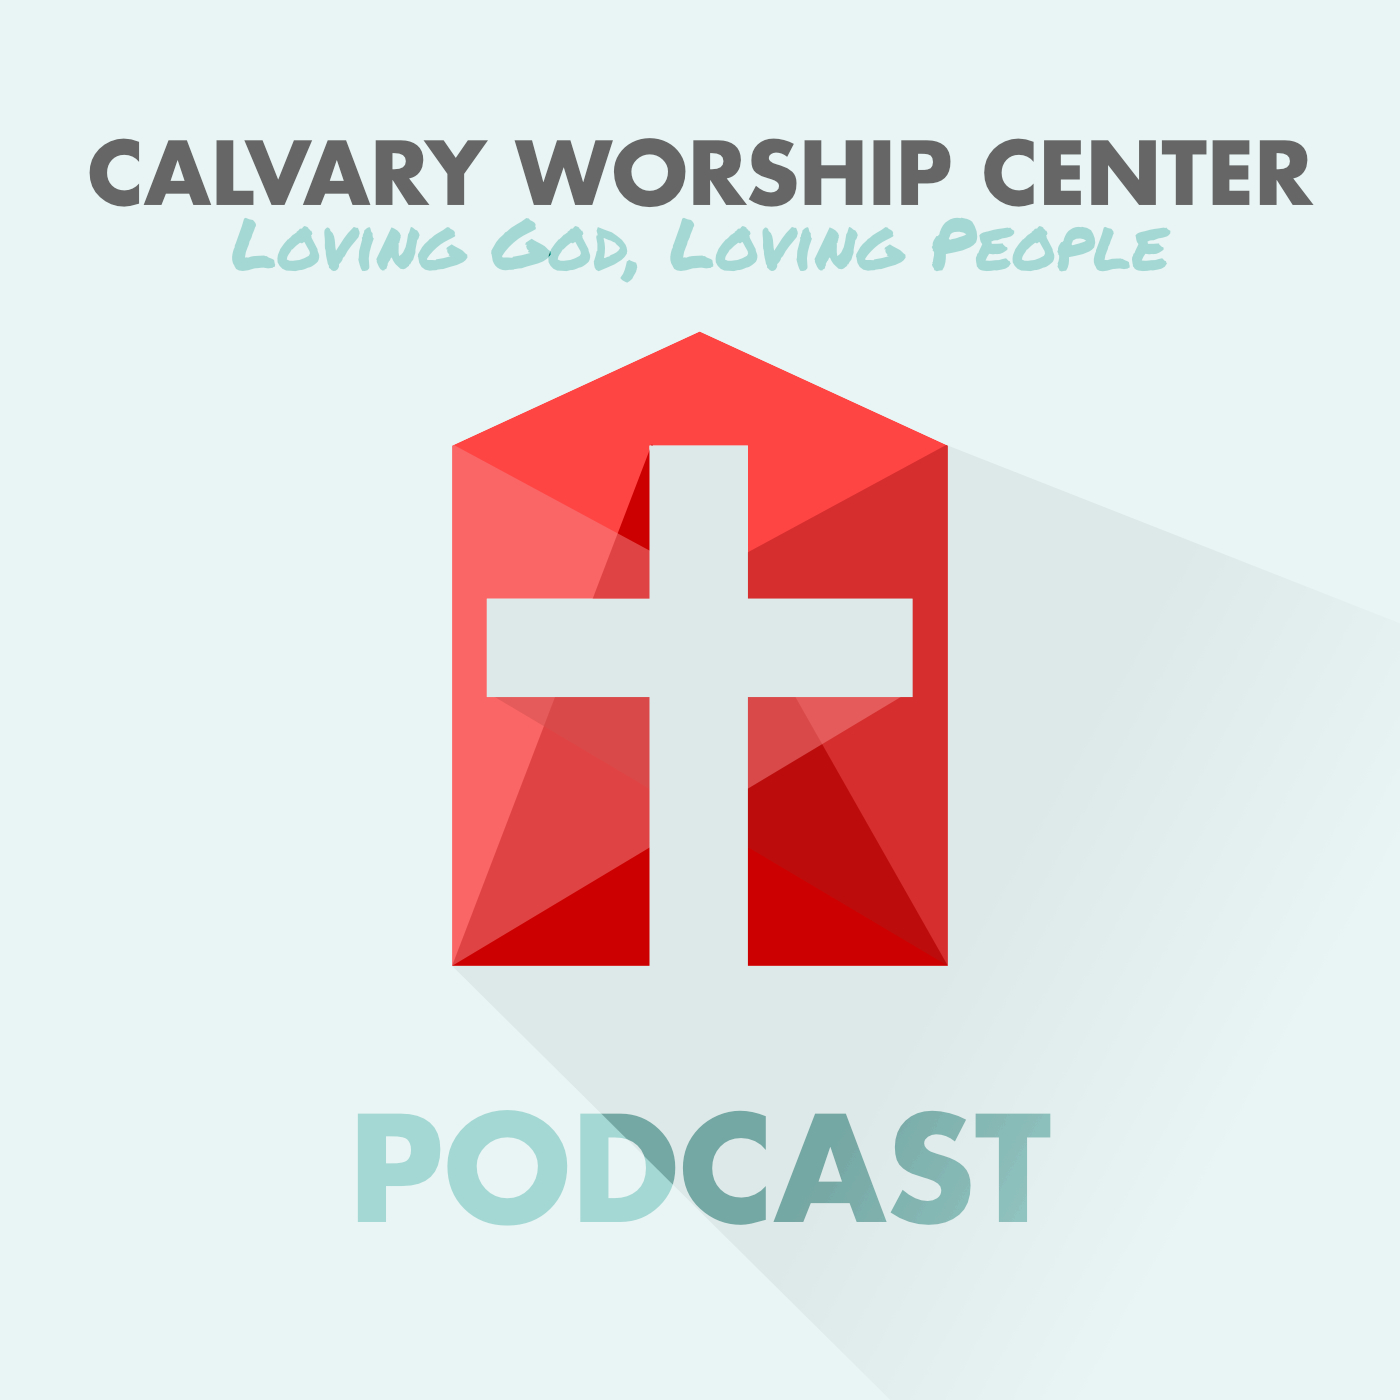 Podcast - Calvary Worship Center